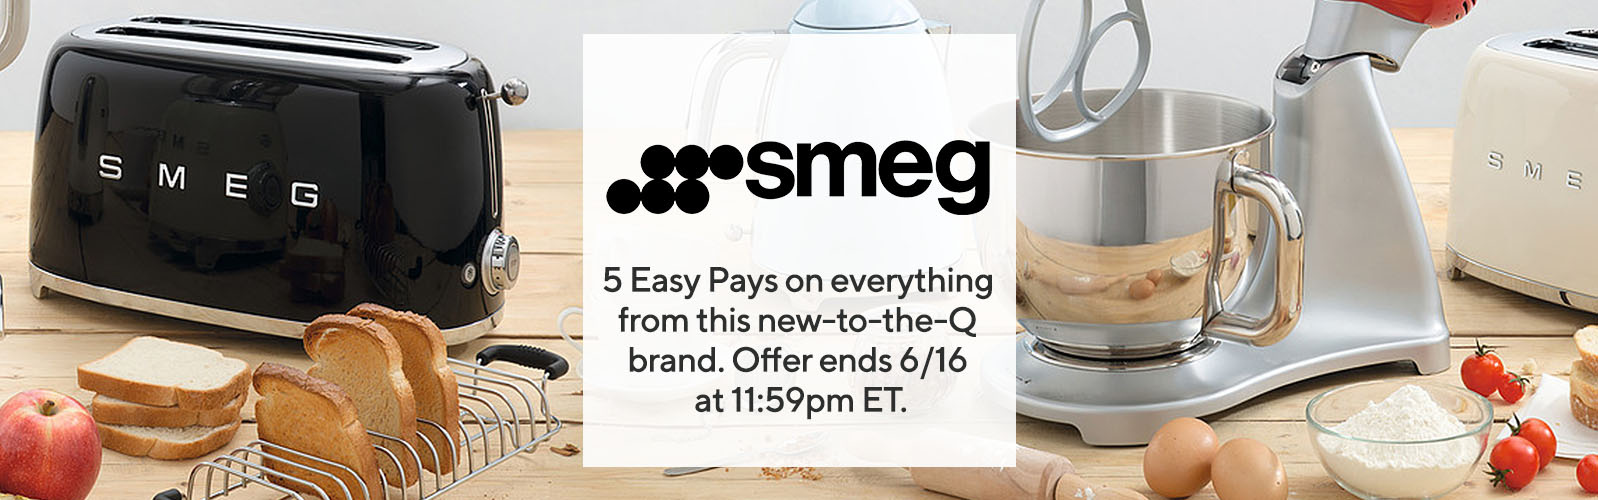 Smeg  5 Easy Pays on everything from this new-to-the-Q brand. Offer ends 6/16 at 11:59pm ET.